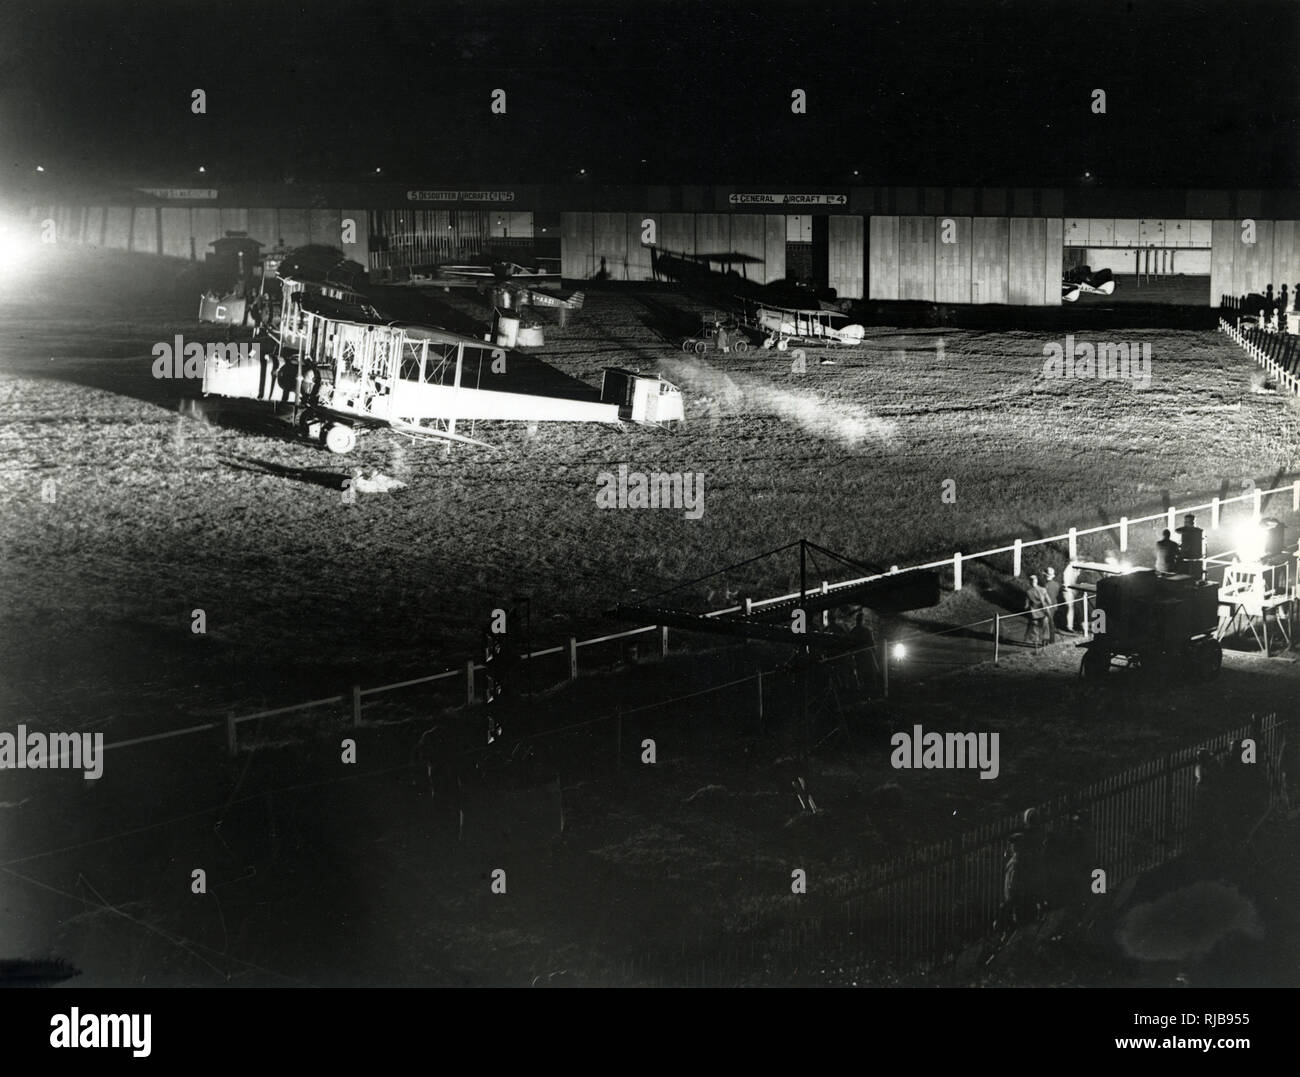 Croydon Airport, Surrey, at night, with hangars in the background. - Stock Image